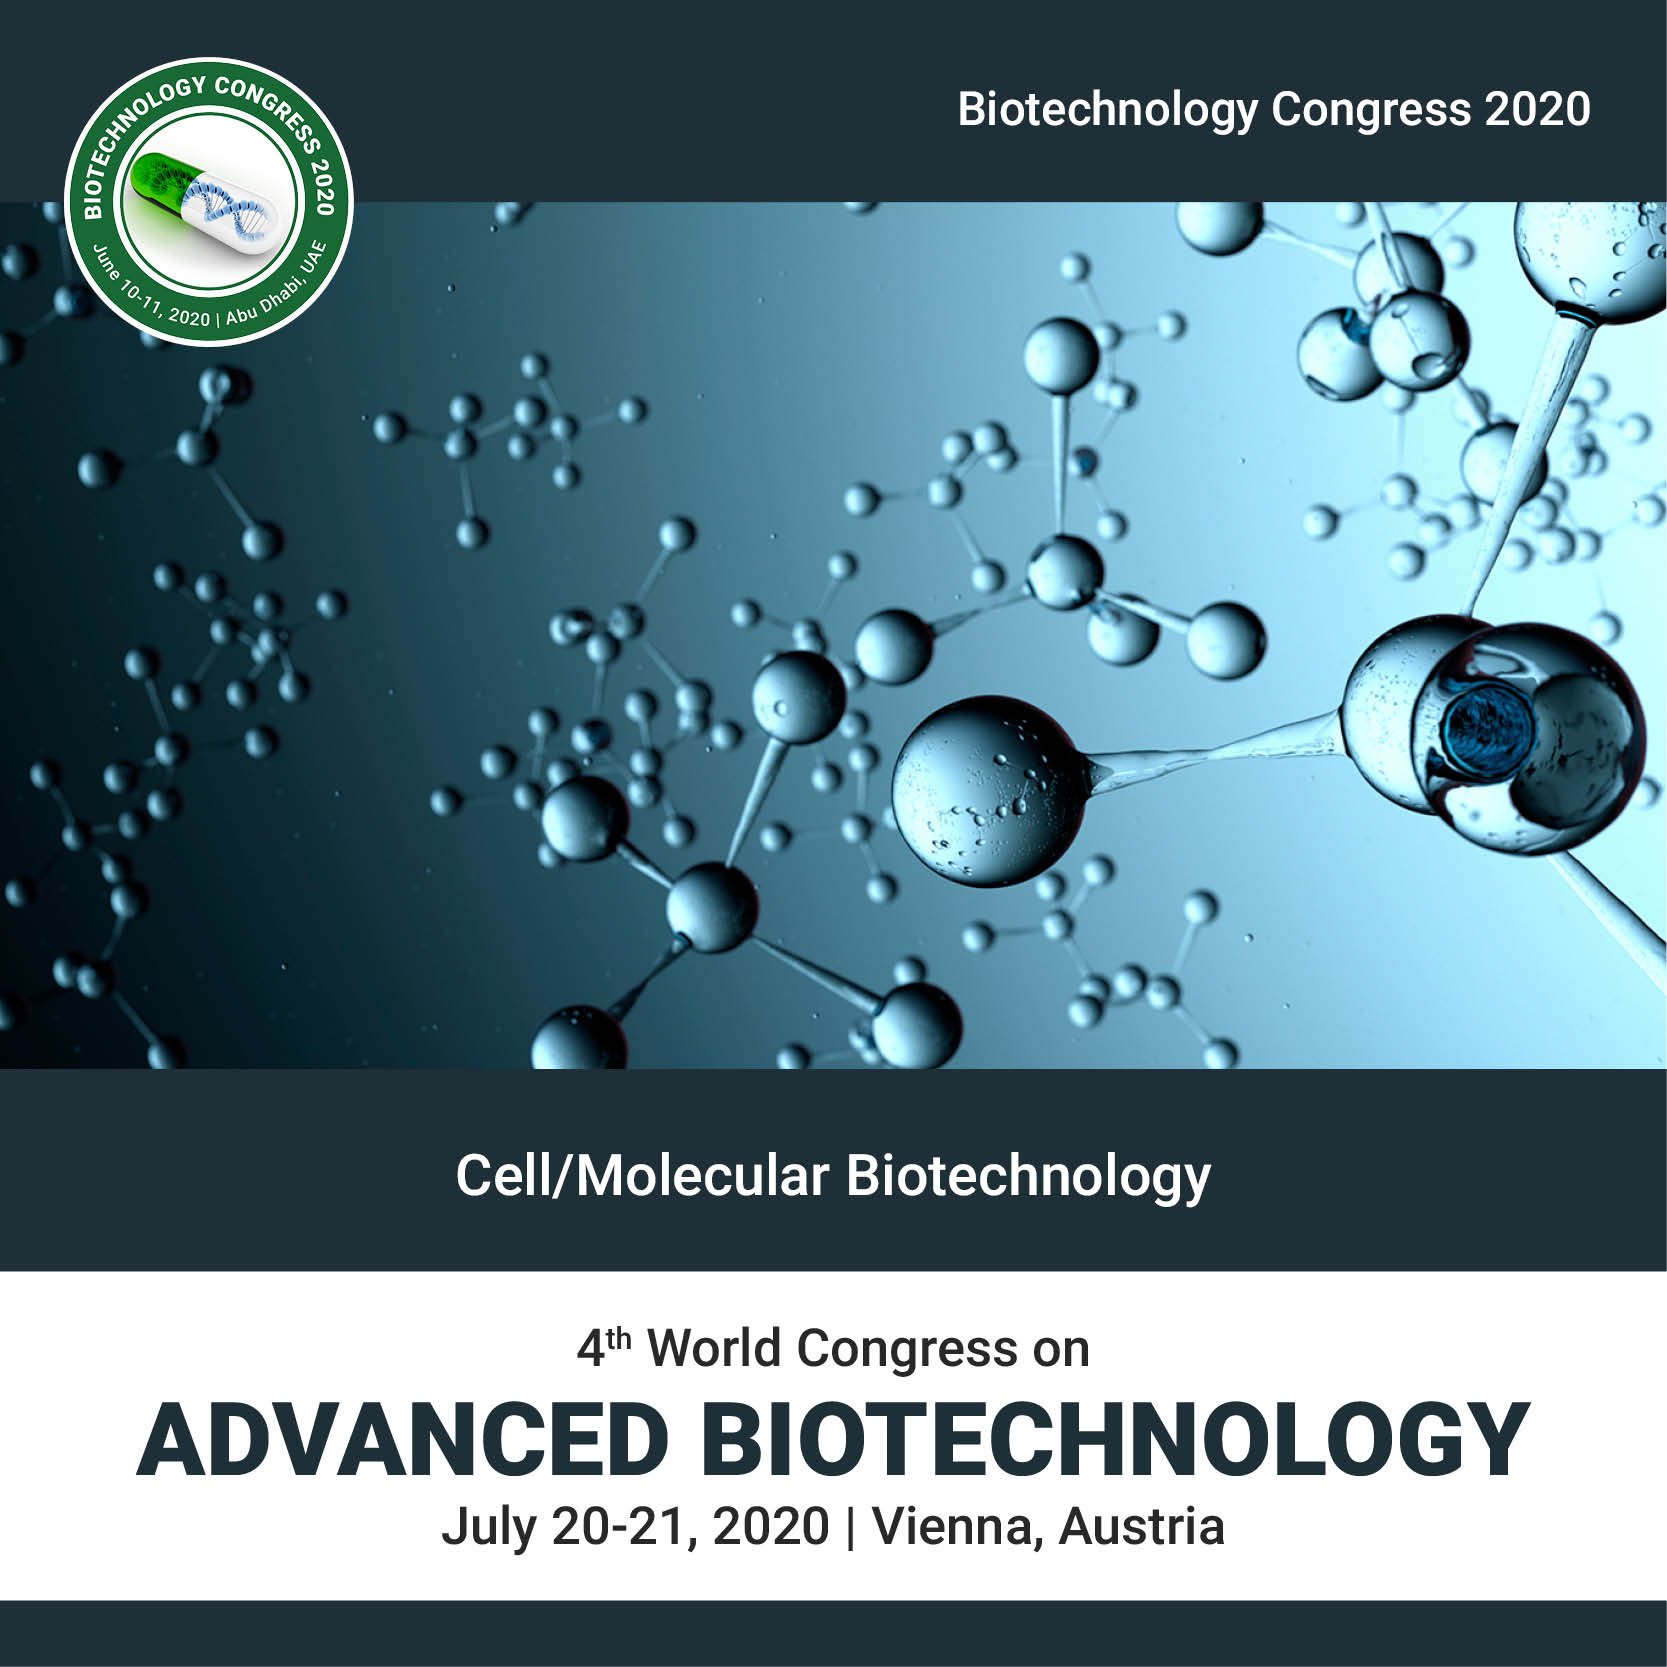 Cell/Molecular Biotechnology Photo